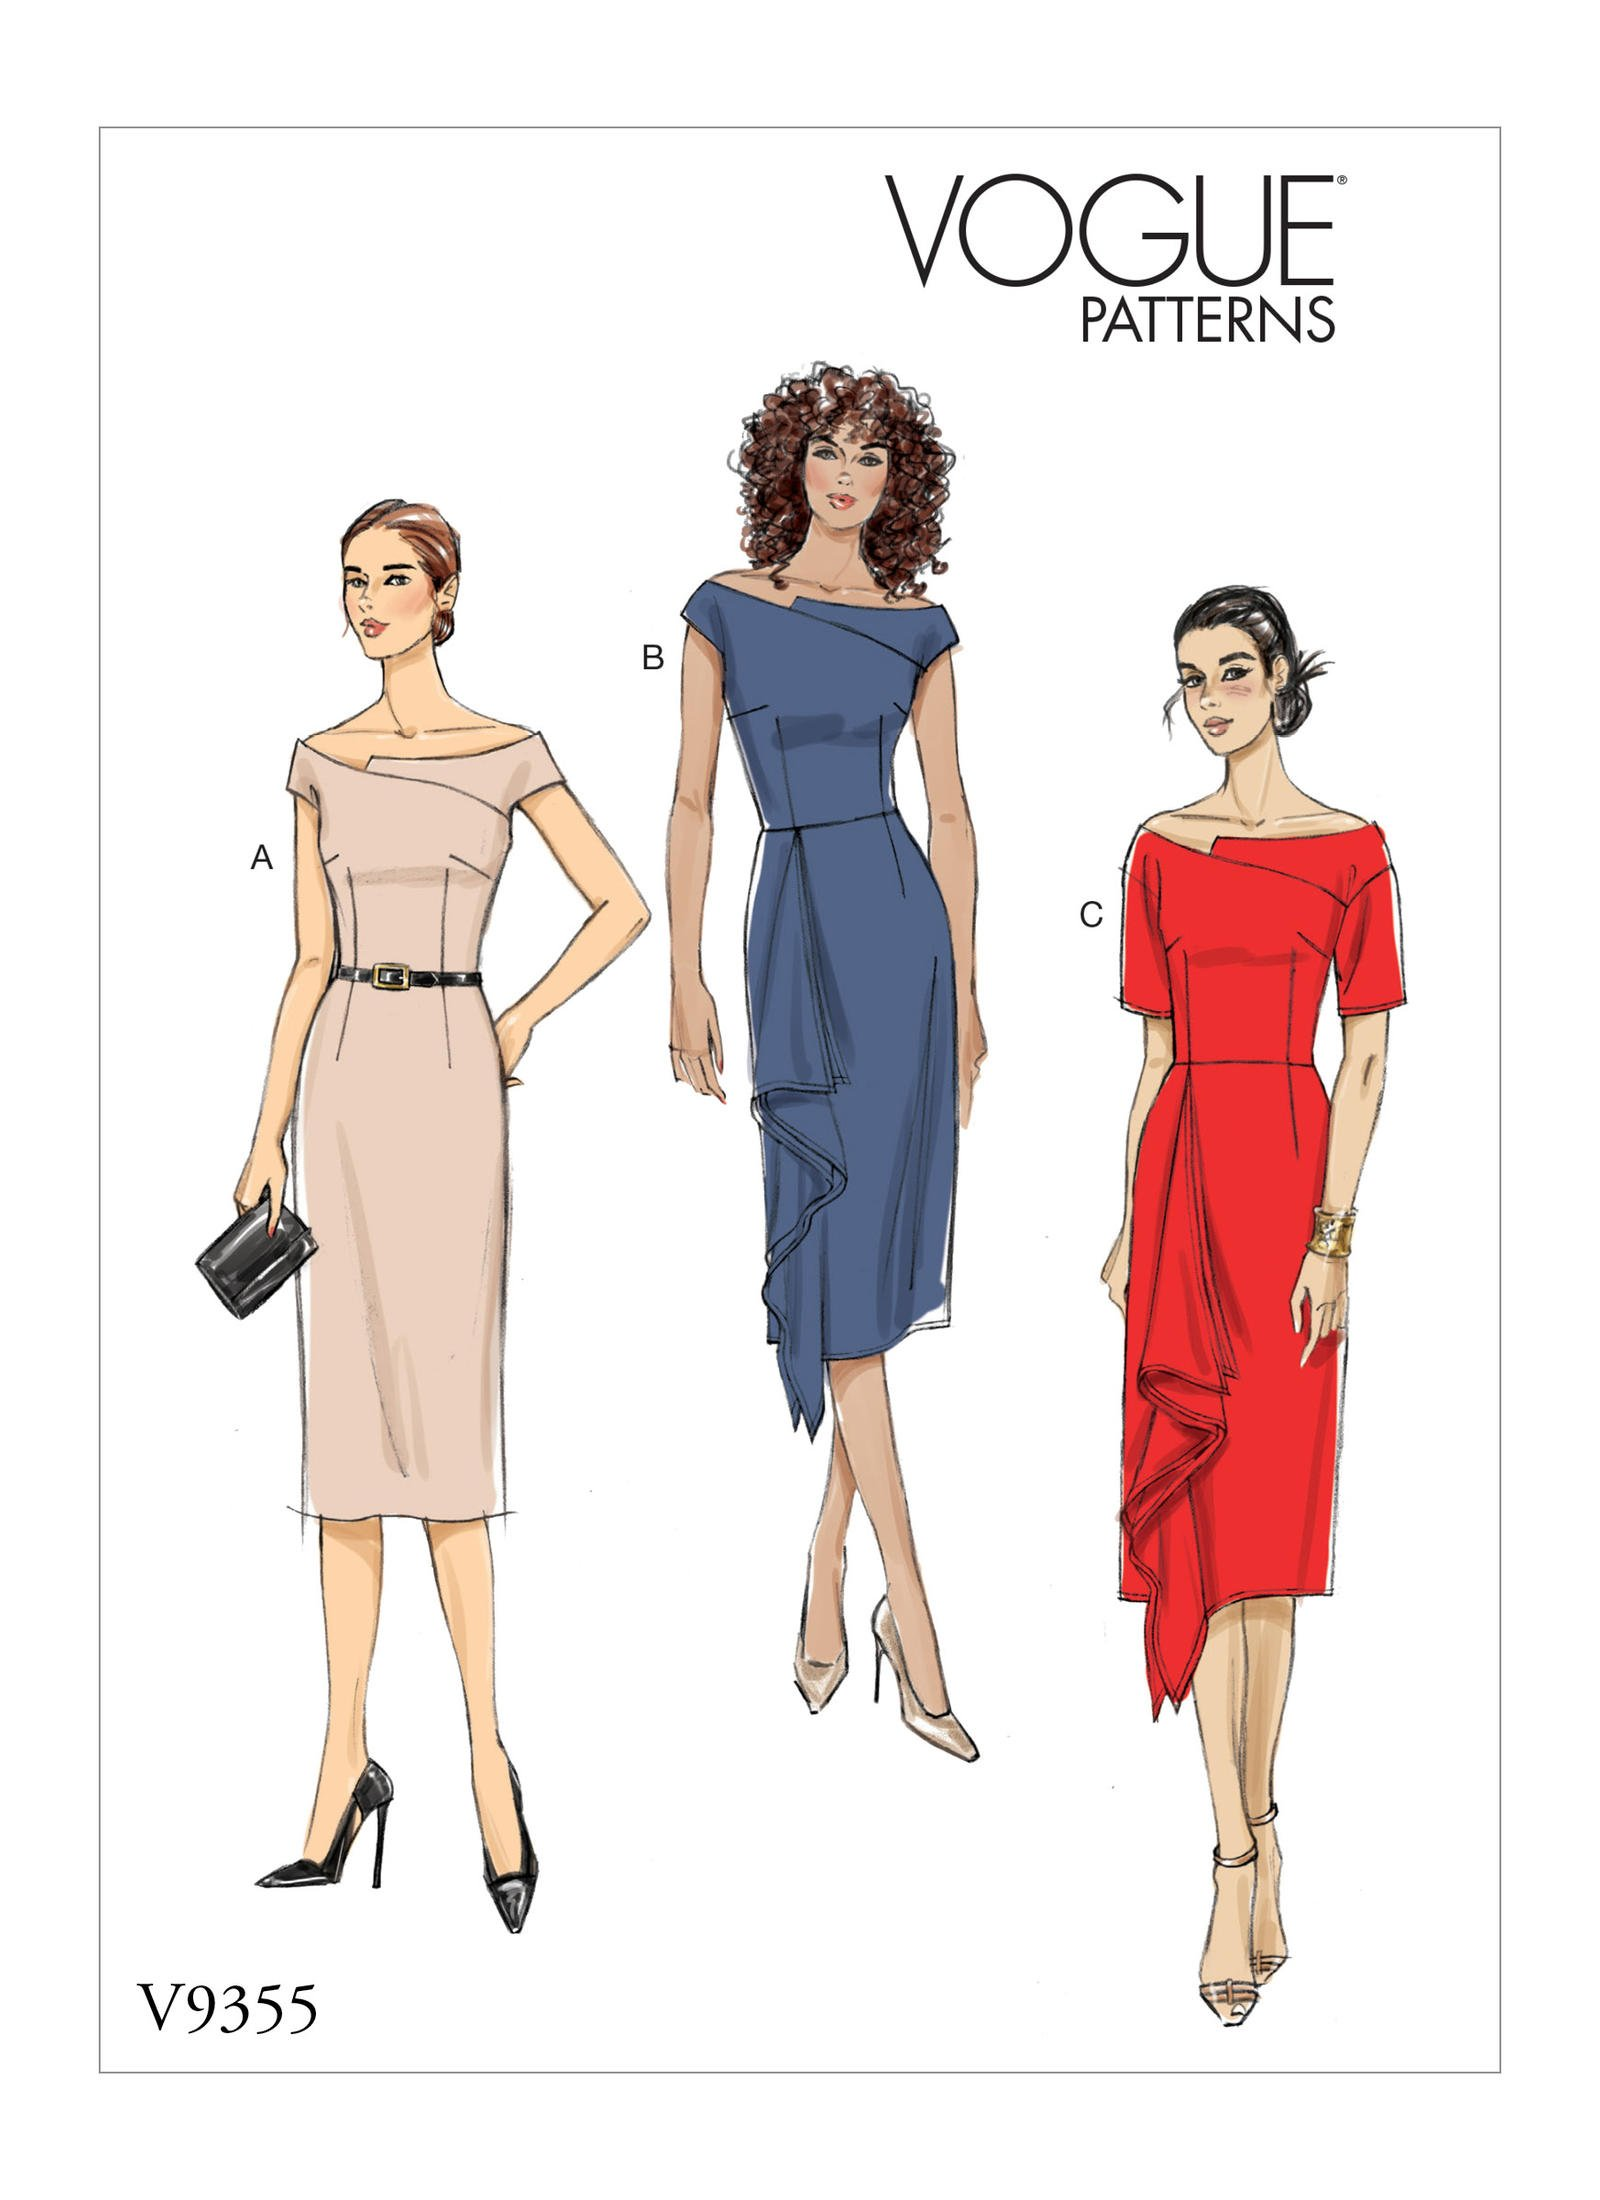 New Vogue Patterns Collection Spring 2019 2 27 19